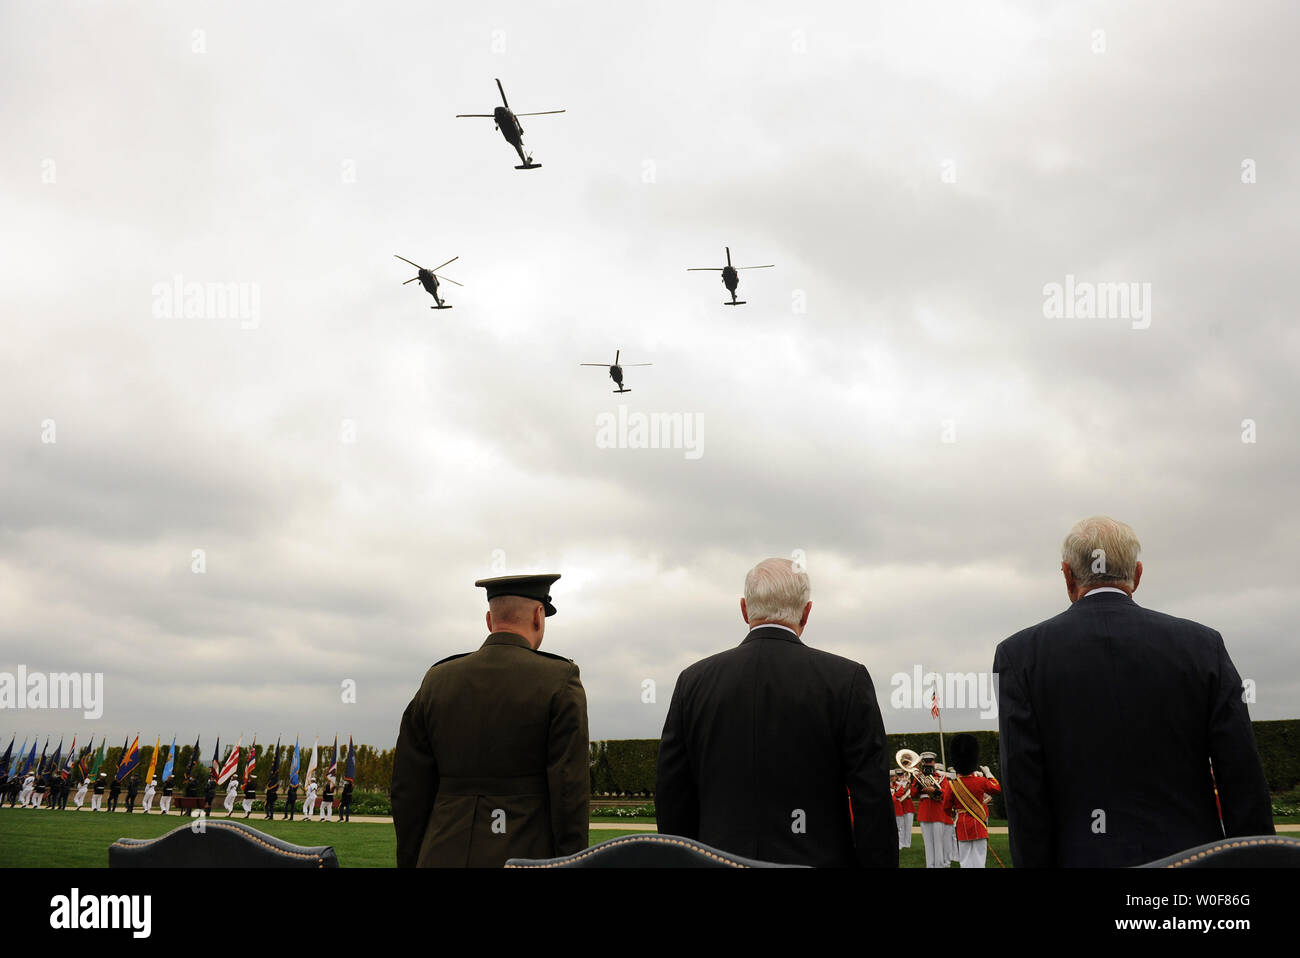 Secretary of Defense Robert M. Gates (C), Vice Chairman of the Joint Chiefs of Staff Marine Corps Gen. James E. Cartwright (L) and Retired Navy Adm. Jeremiah Denton, a former POW and senator, watch helicopters fly in formation over the Pentagon ceremony for National POW/MIA Recognition Day at the River Entrance Parade Field on September 18, 2009.     UPI/Roger L. Wollenberg - Stock Image